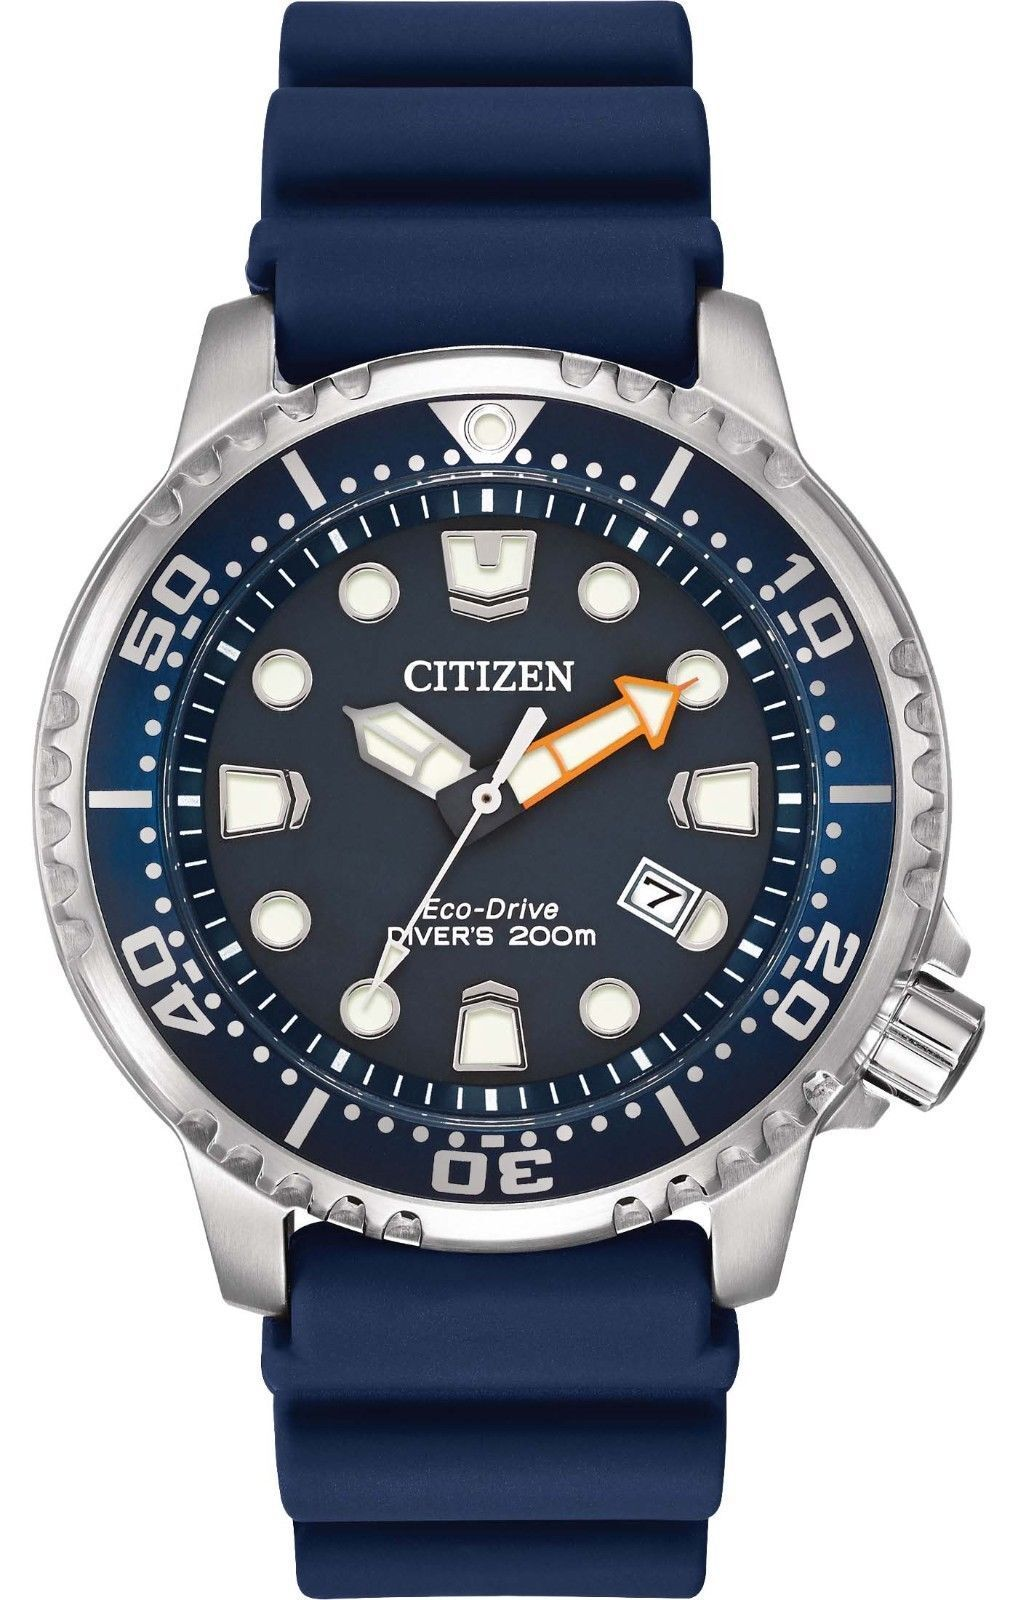 $177.00 - Citizen BN0151-09L Men's Promaster Professional Diver PU Band Blue Dial Watch